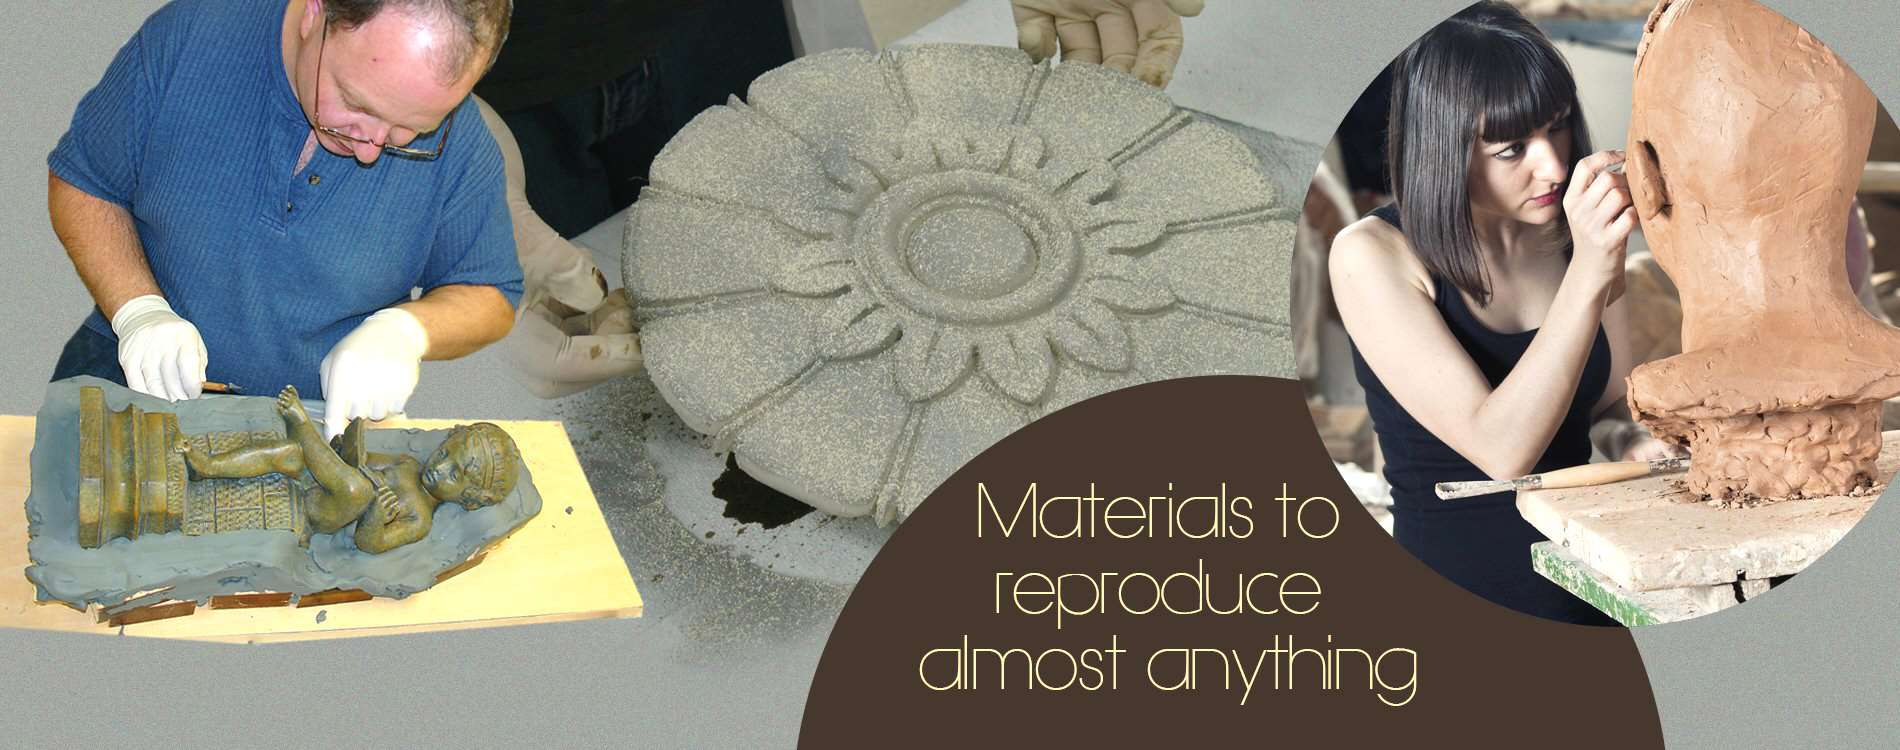 Materials to Reproduce Almost Anything include Silicone Rubber and Alginate